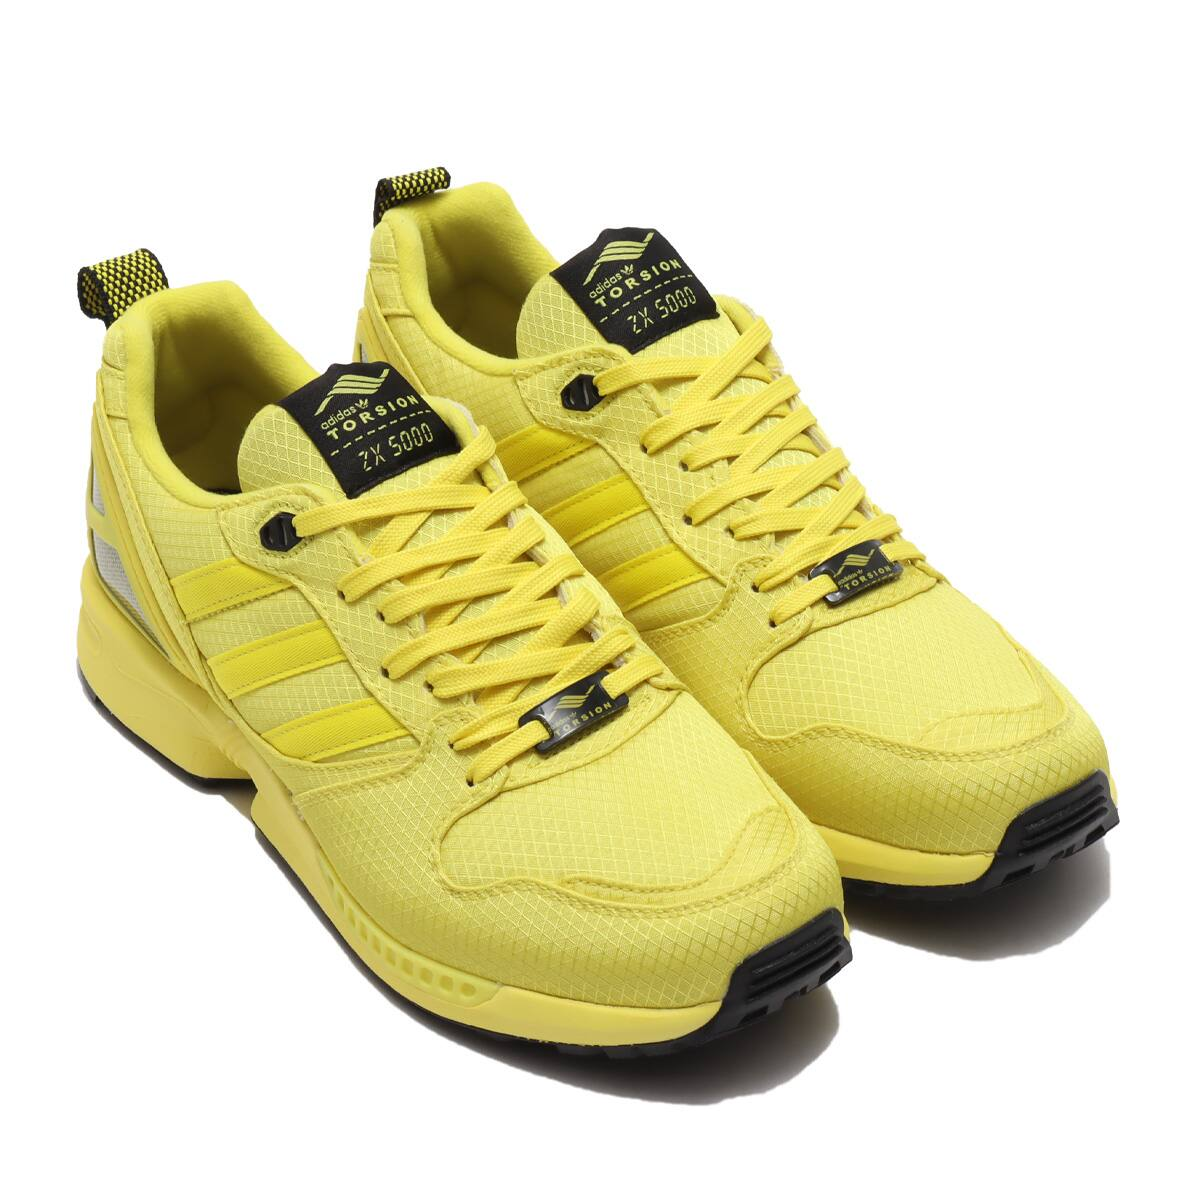 adidas ZX 5000 TORSION 21SS-S